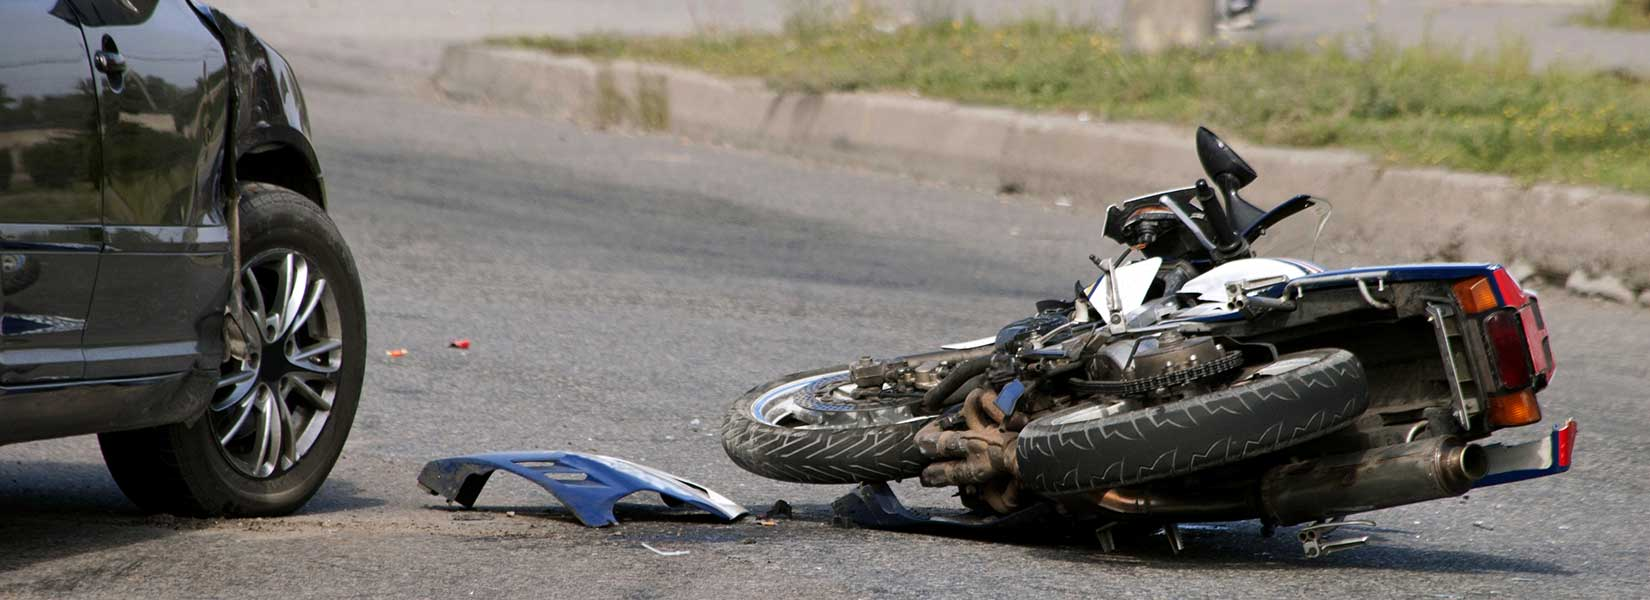 Why are Motorcycle Accidents so Serious? | Motorcycle Accident Lawyer